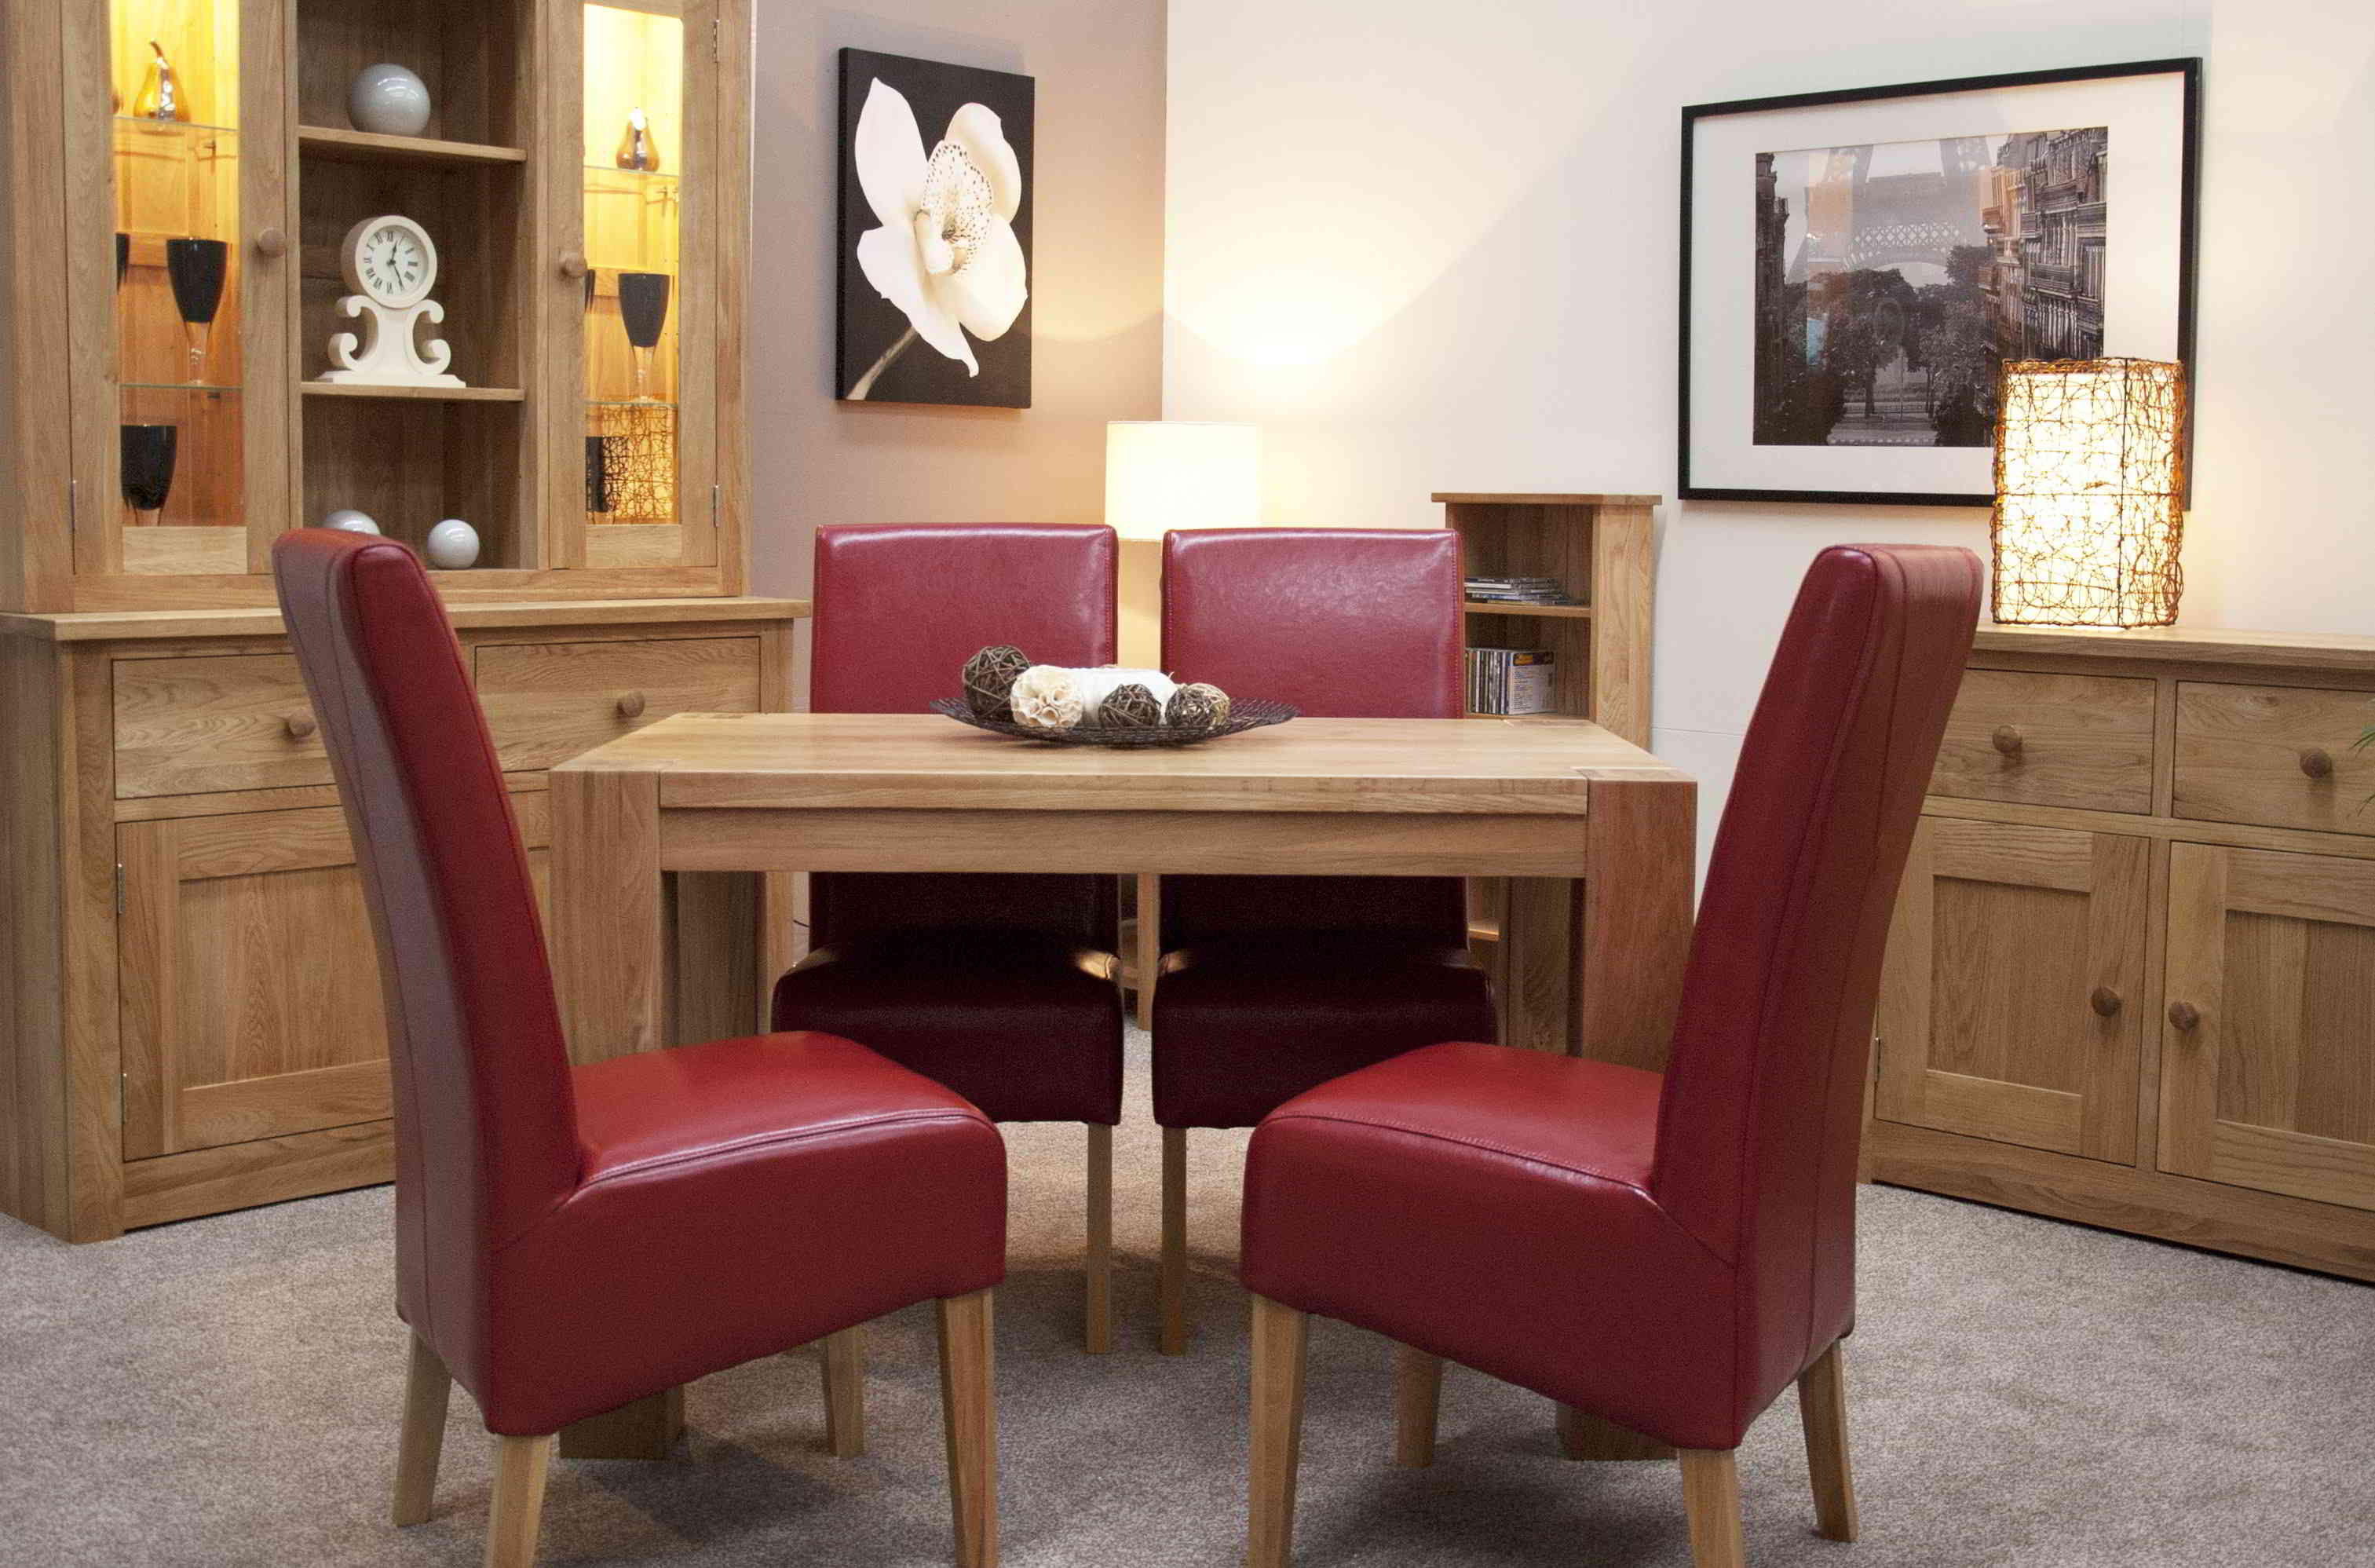 Details About Padova Solid Oak Furniture Small Dining Table And Four Red Leather Chairs Set